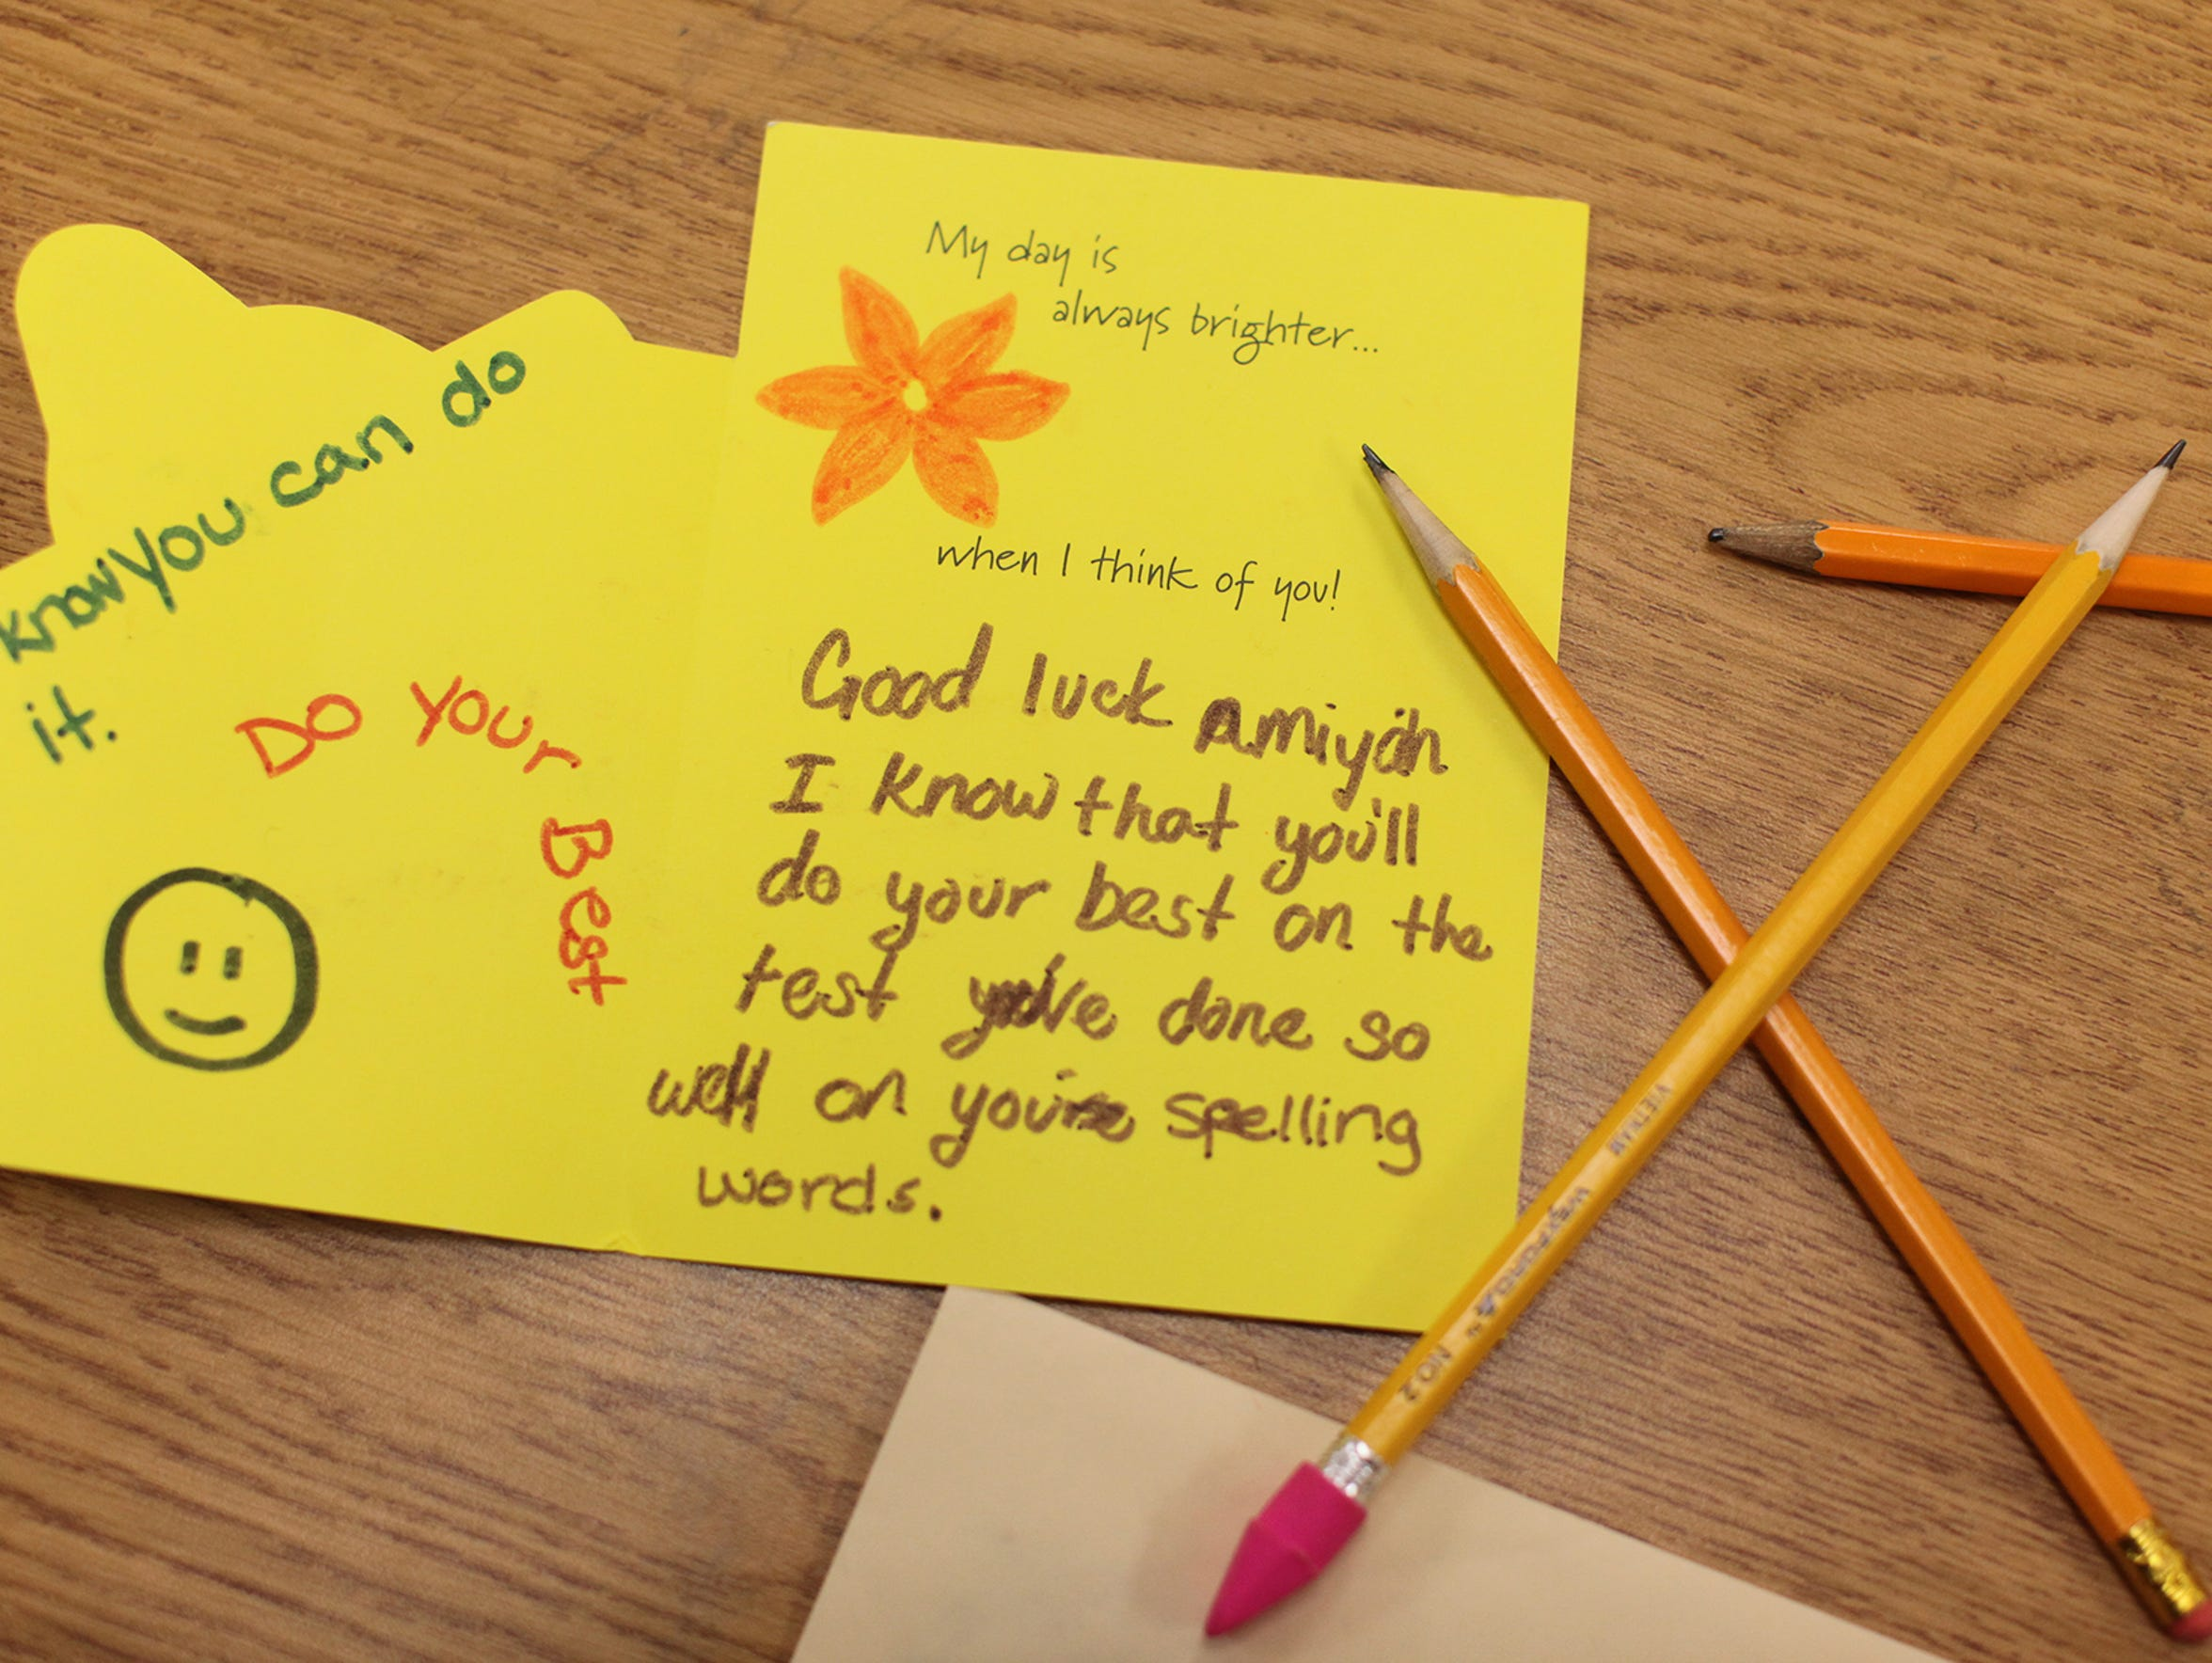 Third-graders get well wishes from family and mentors